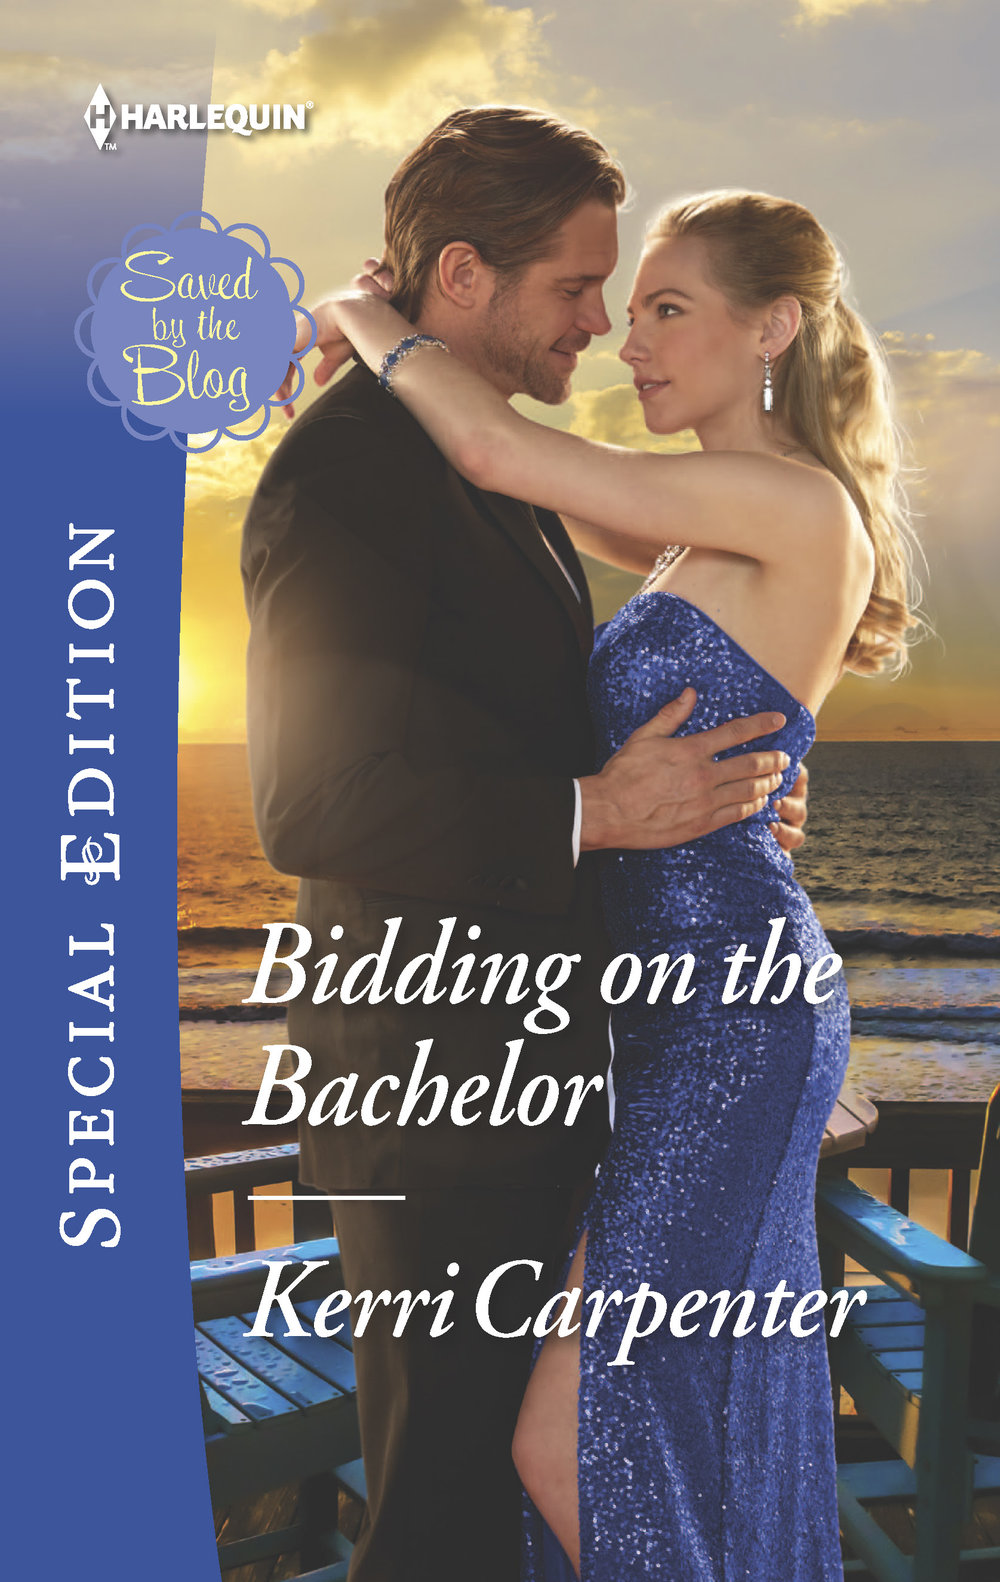 BIDDING ON THE BACHELOR cover.jpg